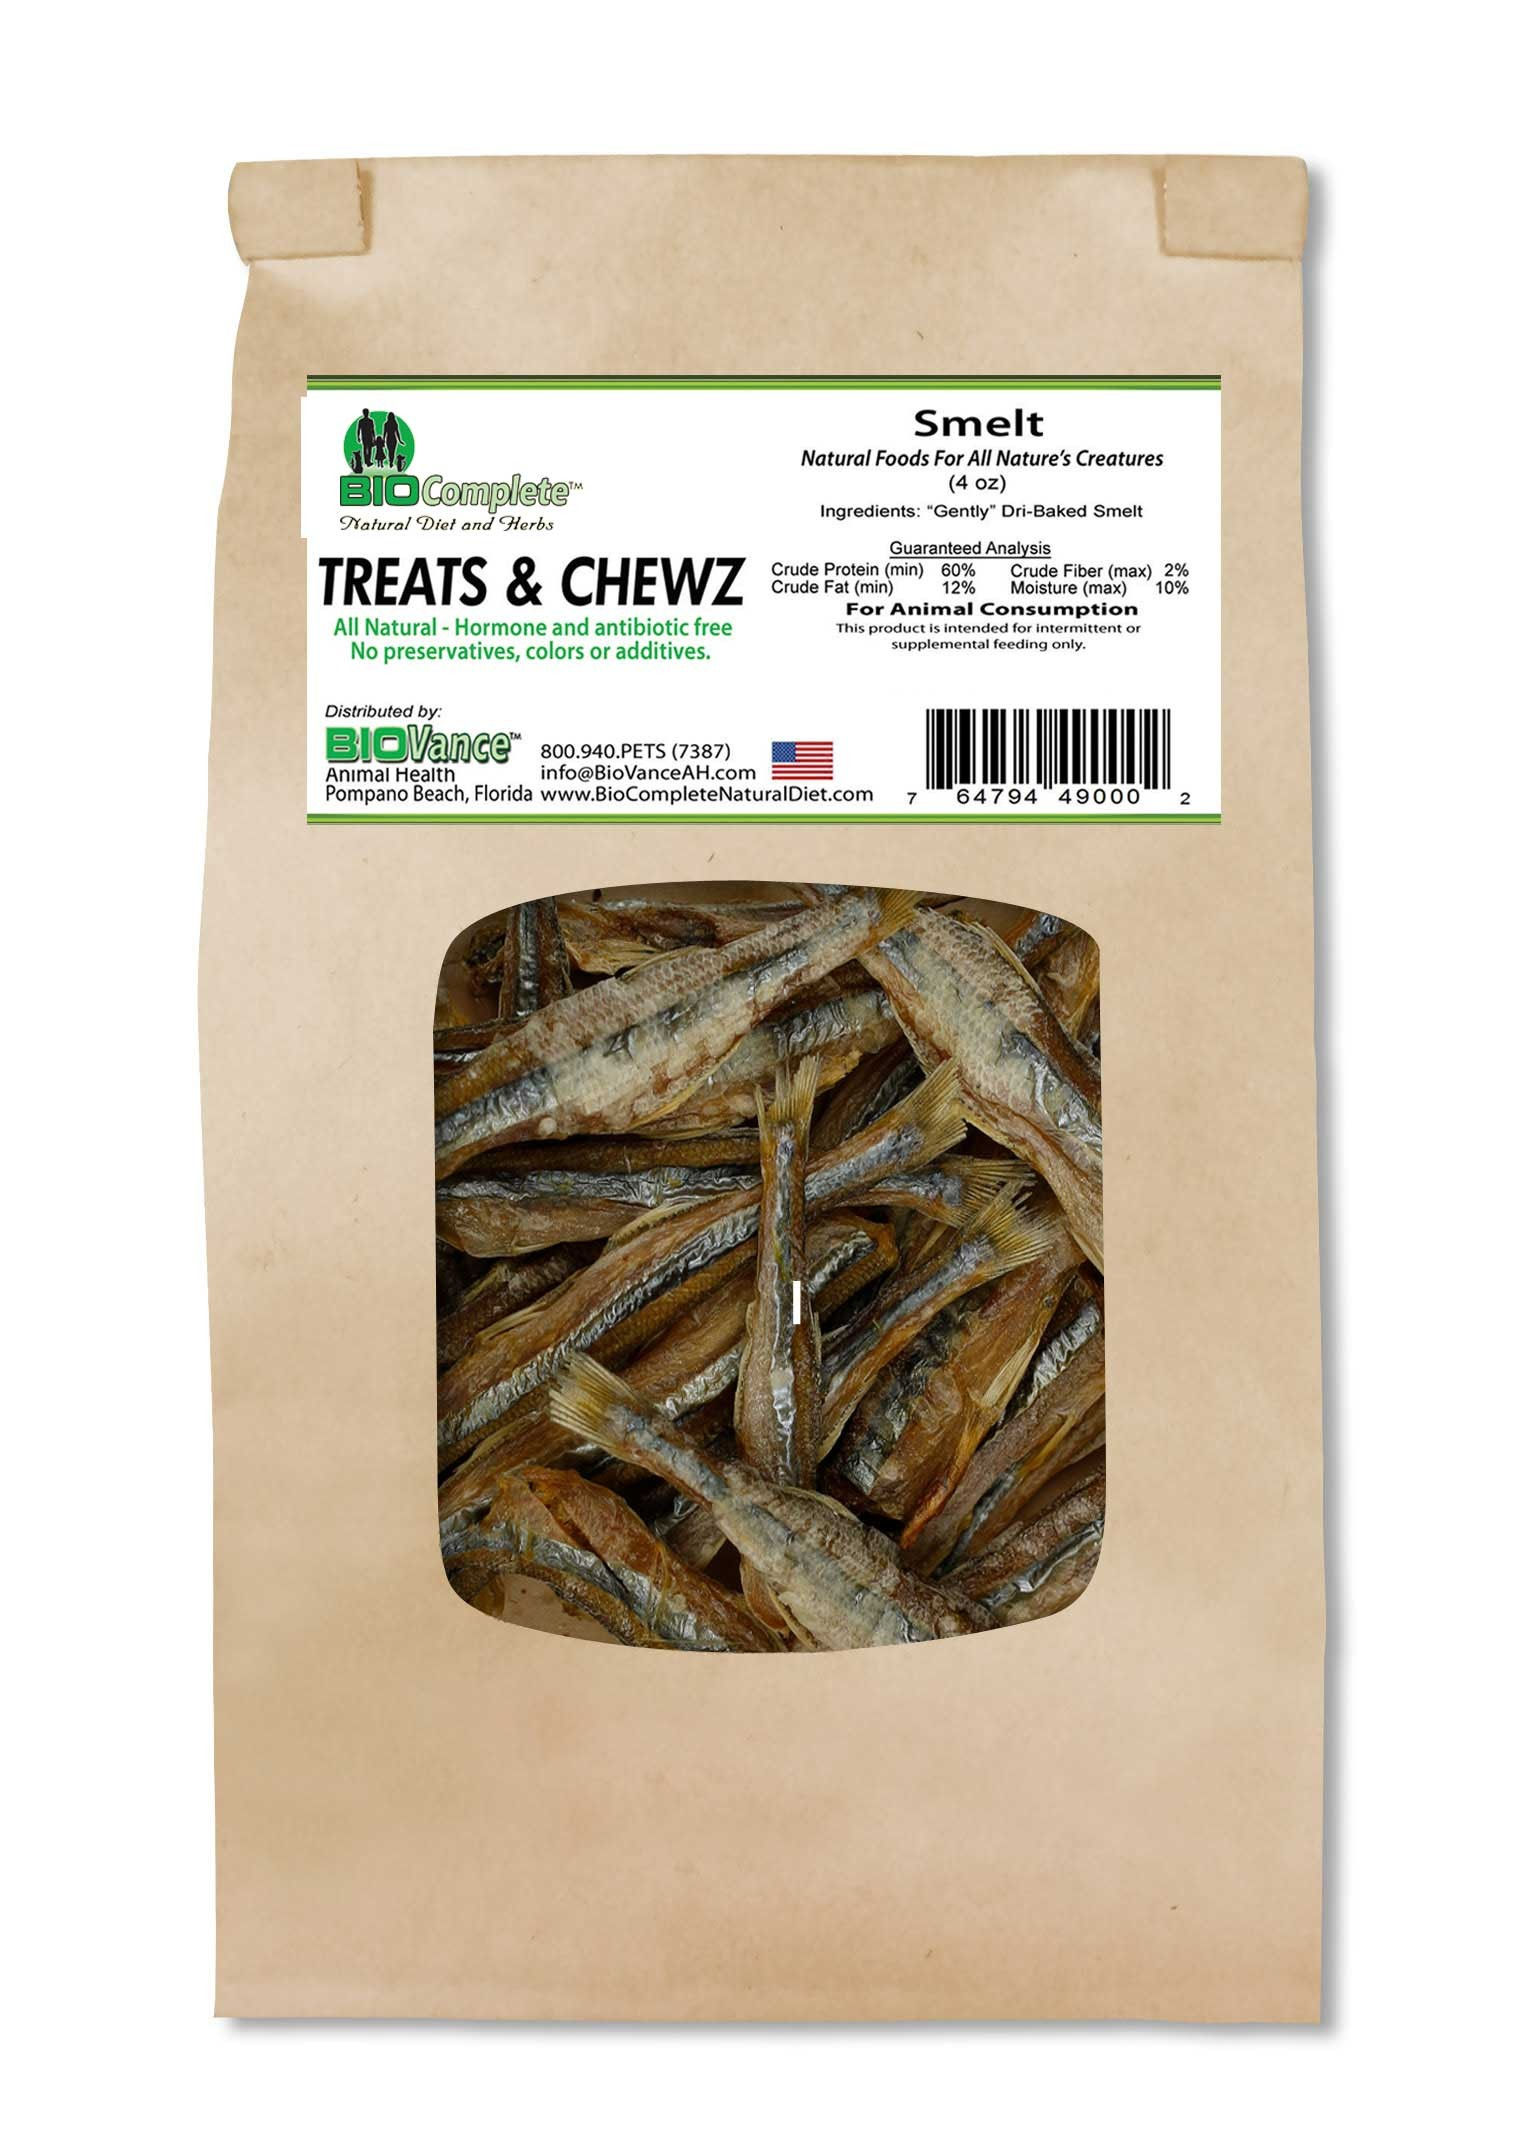 BioComplete Smelt Treats